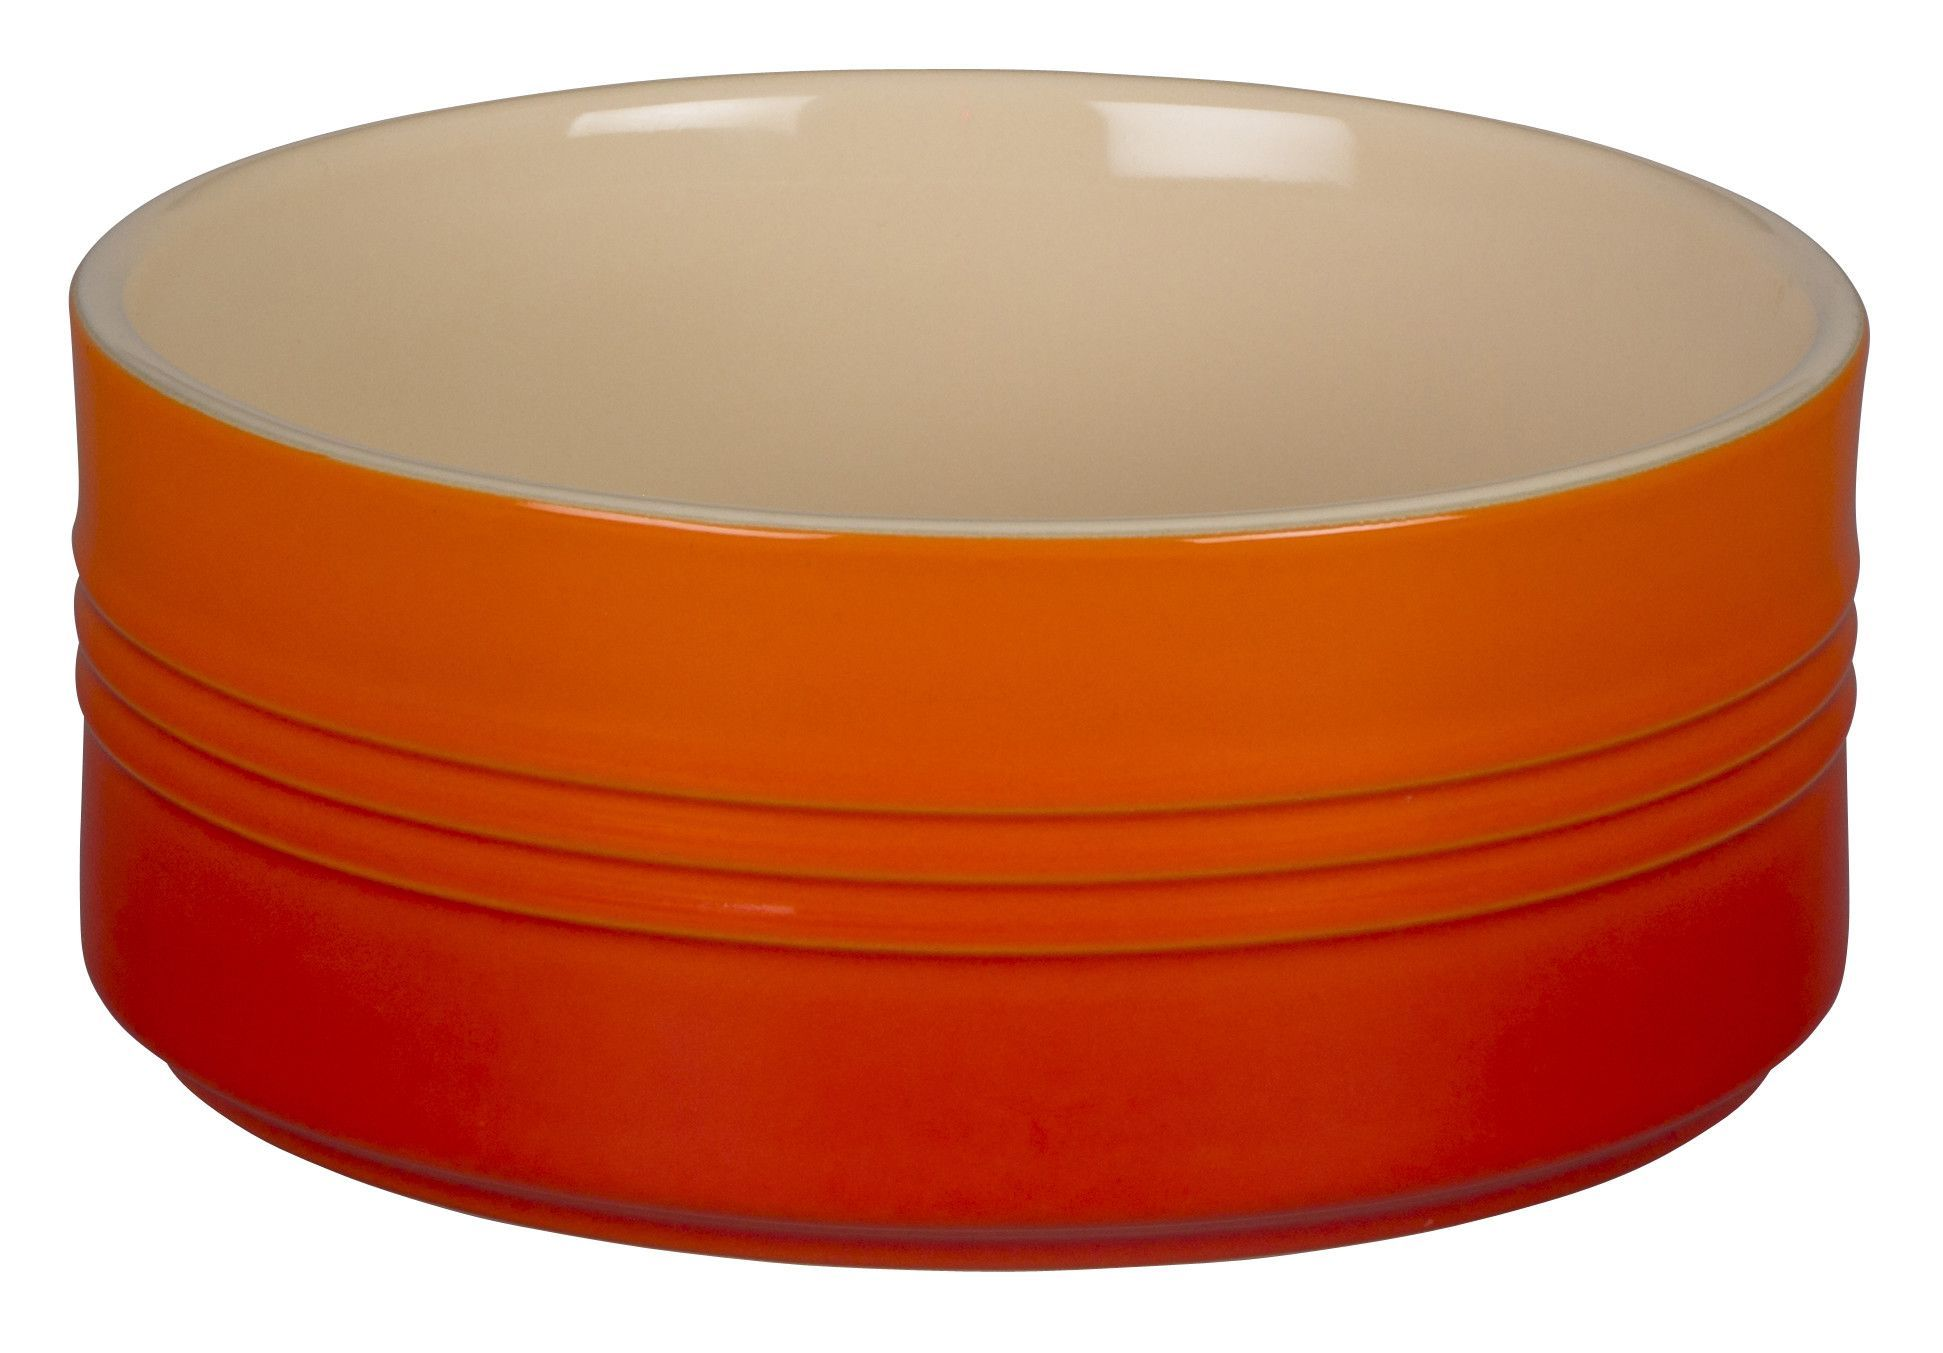 Cuisinart 176 Oz Cast Iron Oval Casserole With Lid Souffle Dish Dishes Stoneware